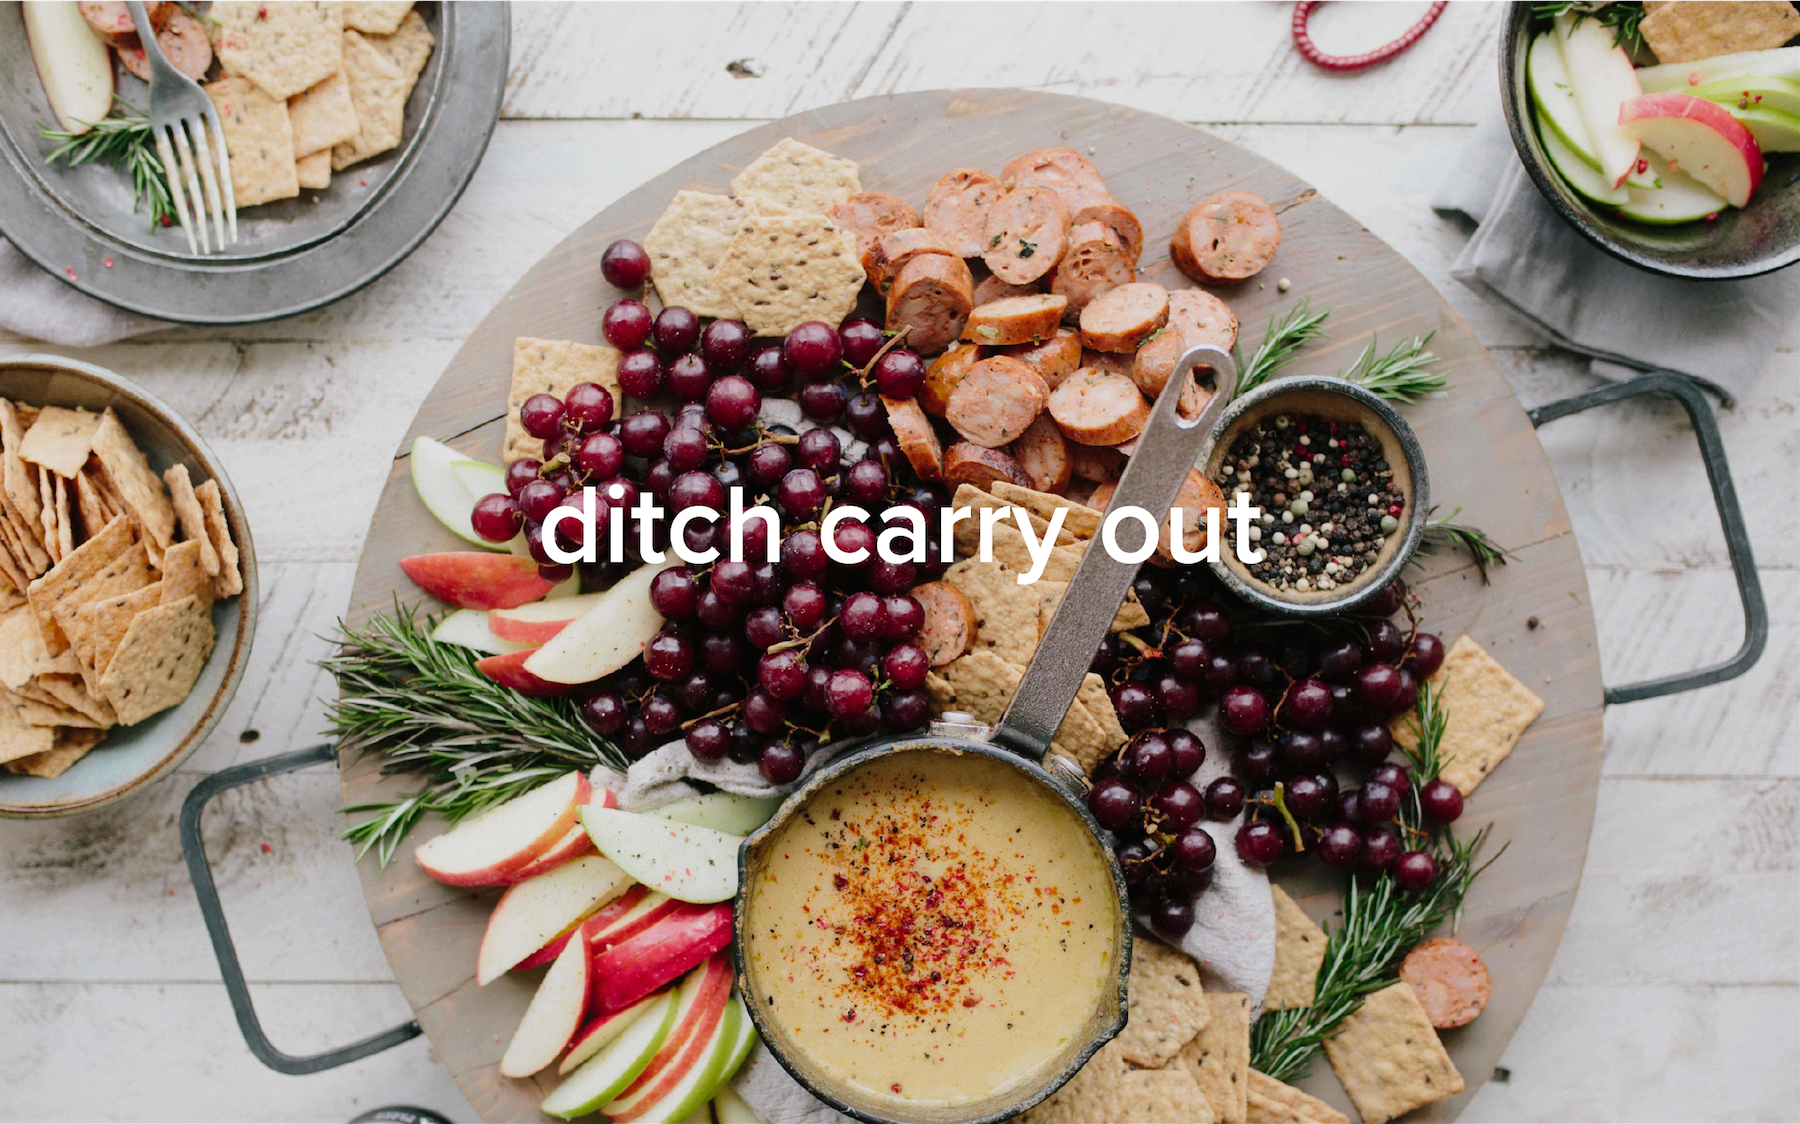 B_DitchCarryOut-01.png